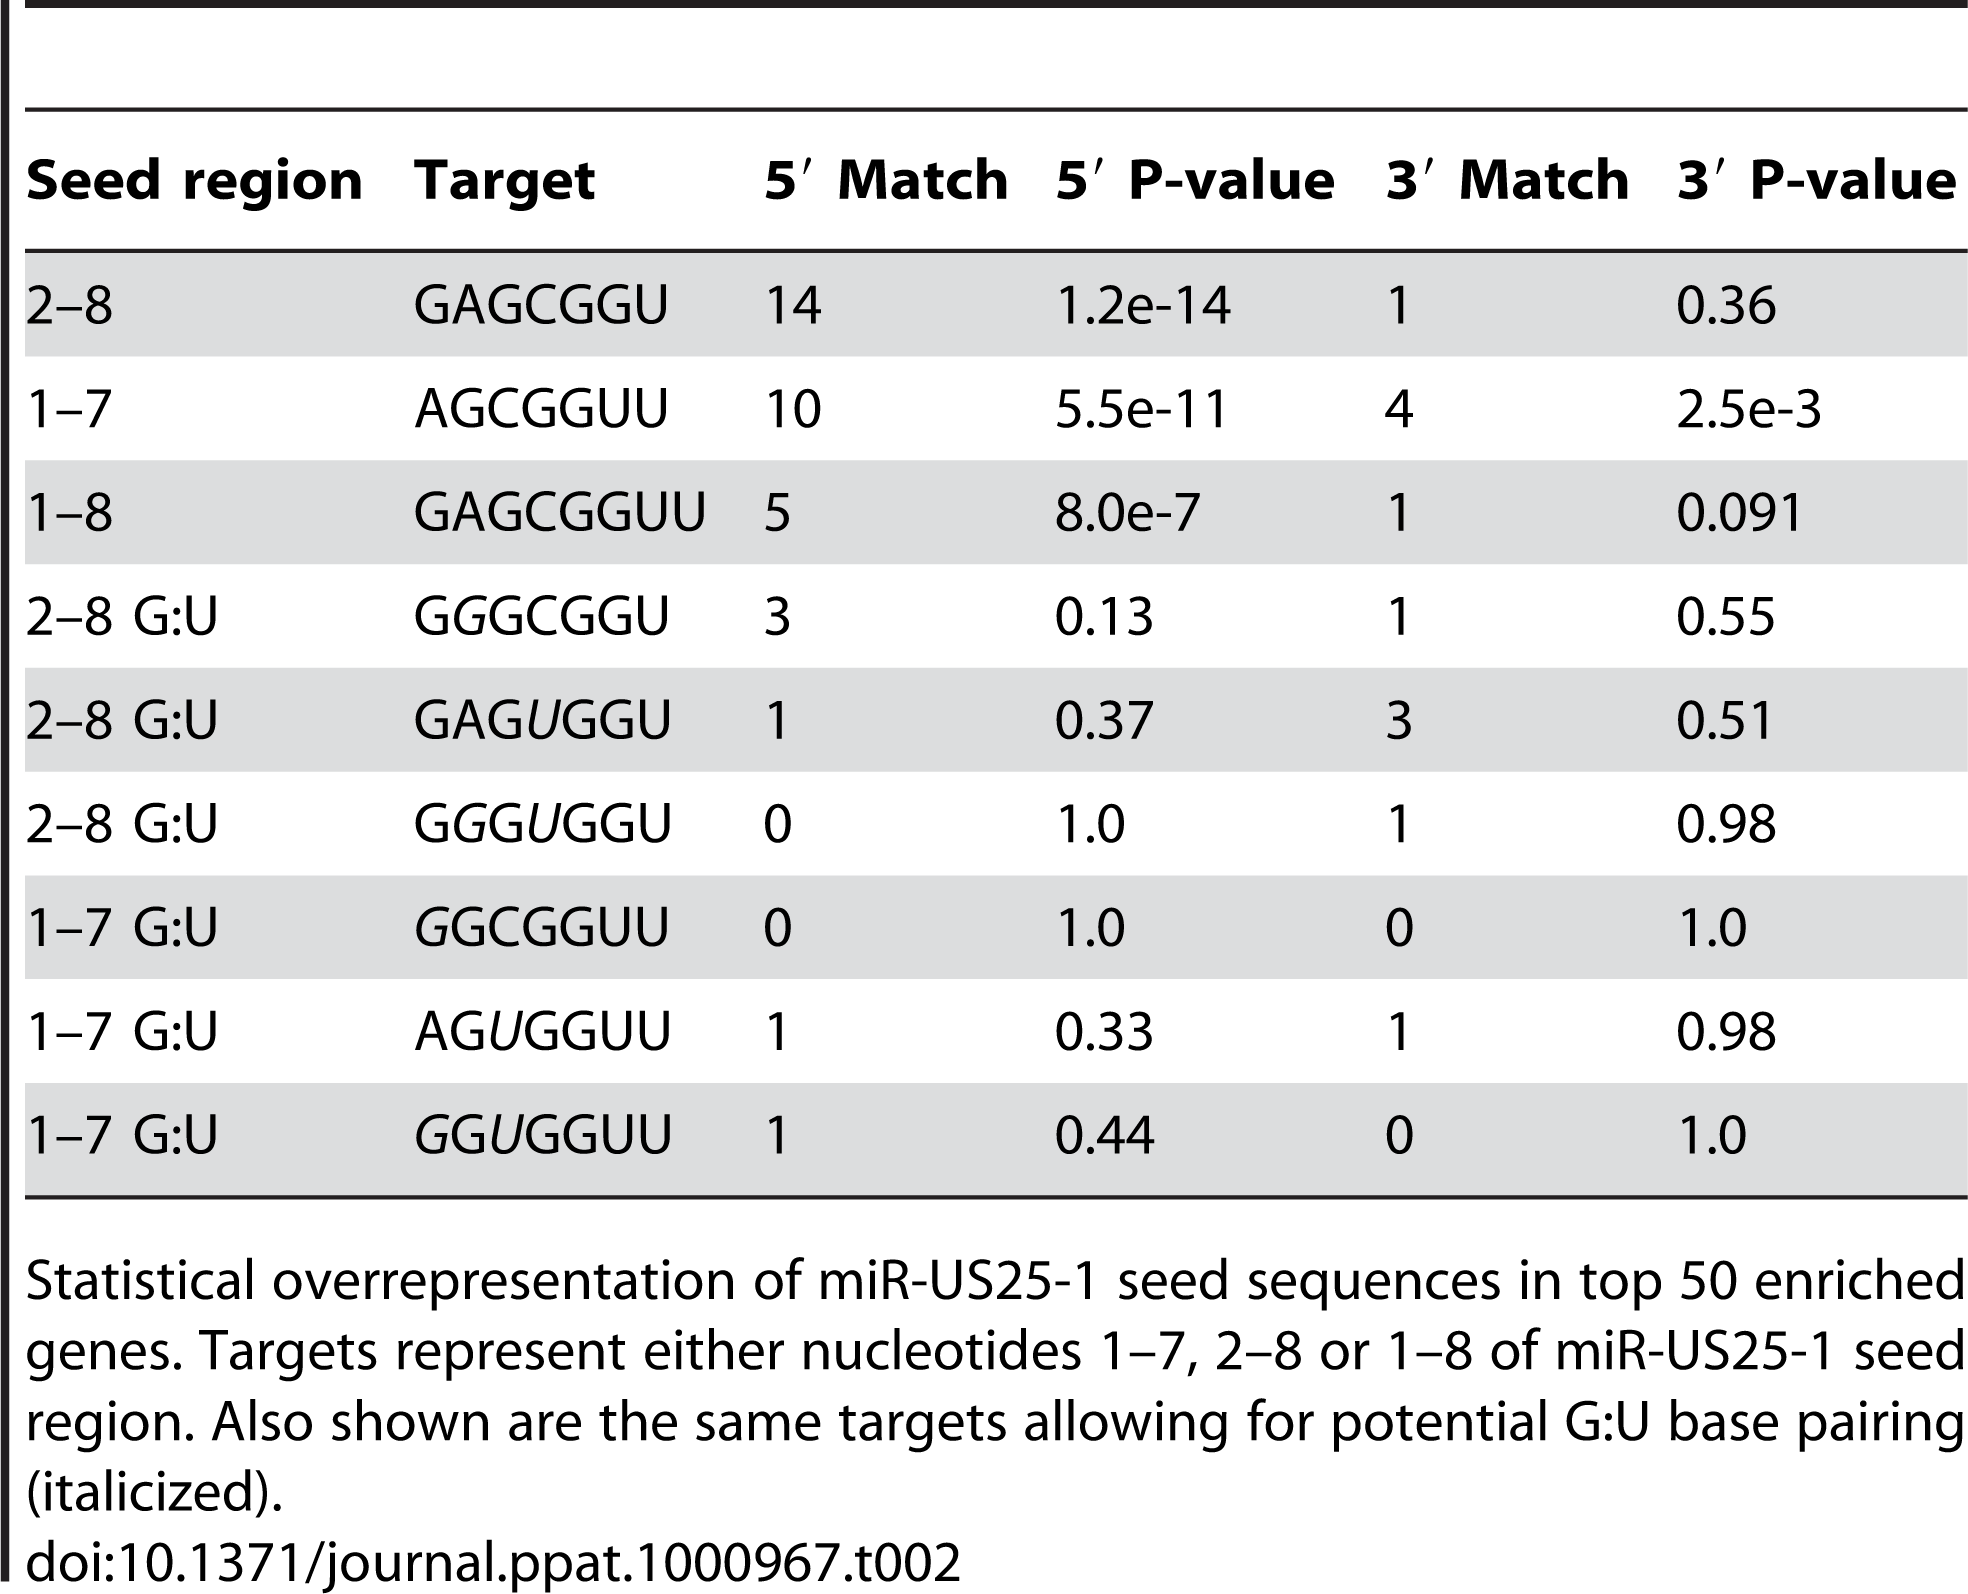 Over representation of seed sequence target sites within top 50 enriched transcripts.